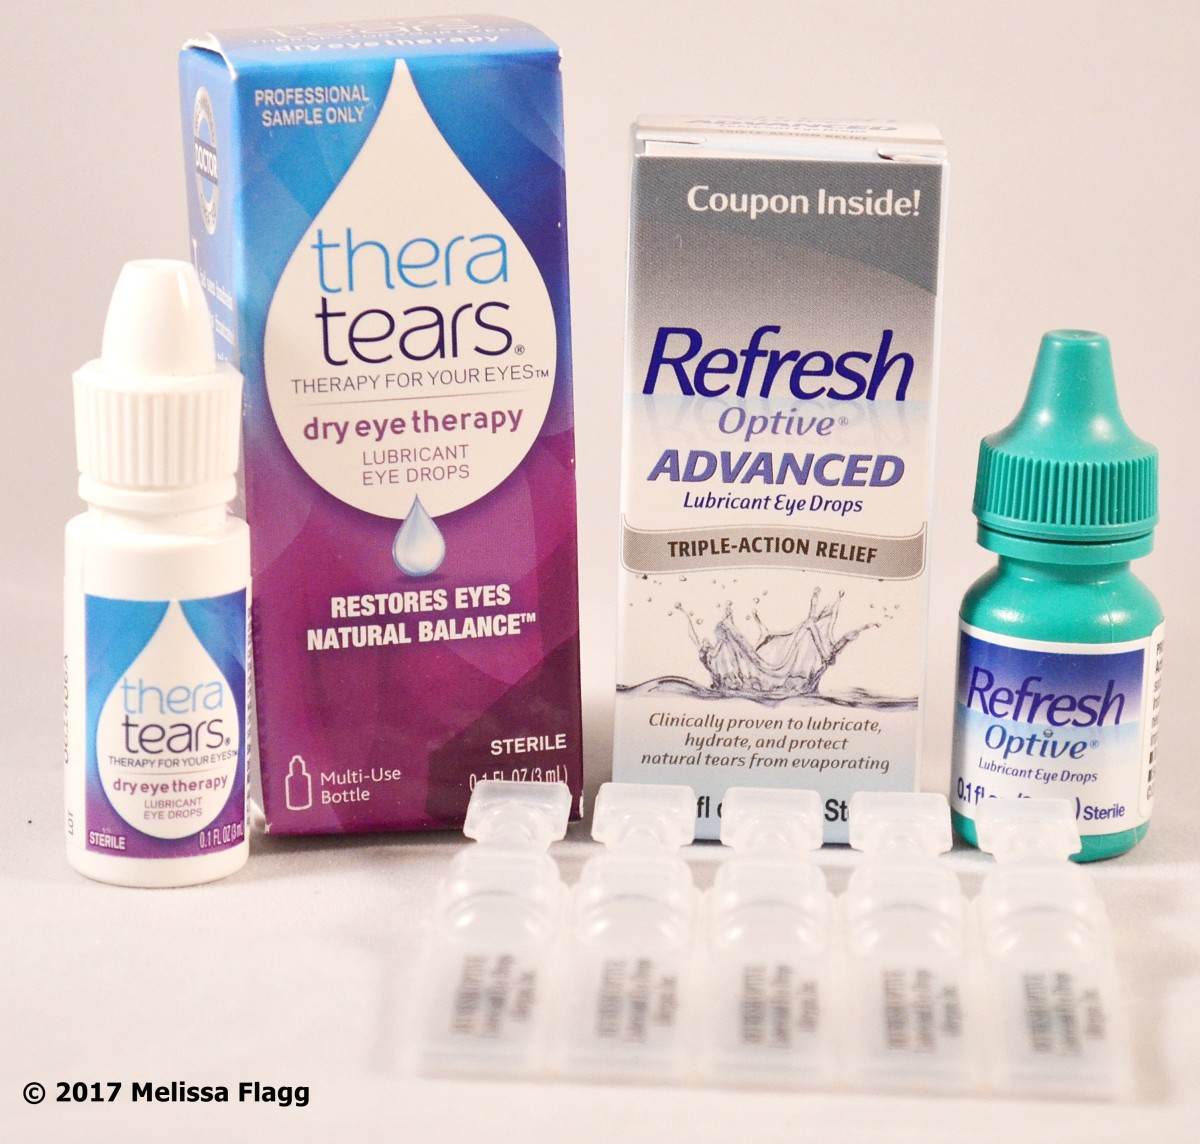 Artificial tears such as Theratears and Refresh Optive are the first line of defense for dry eye and dry eye syndrome.